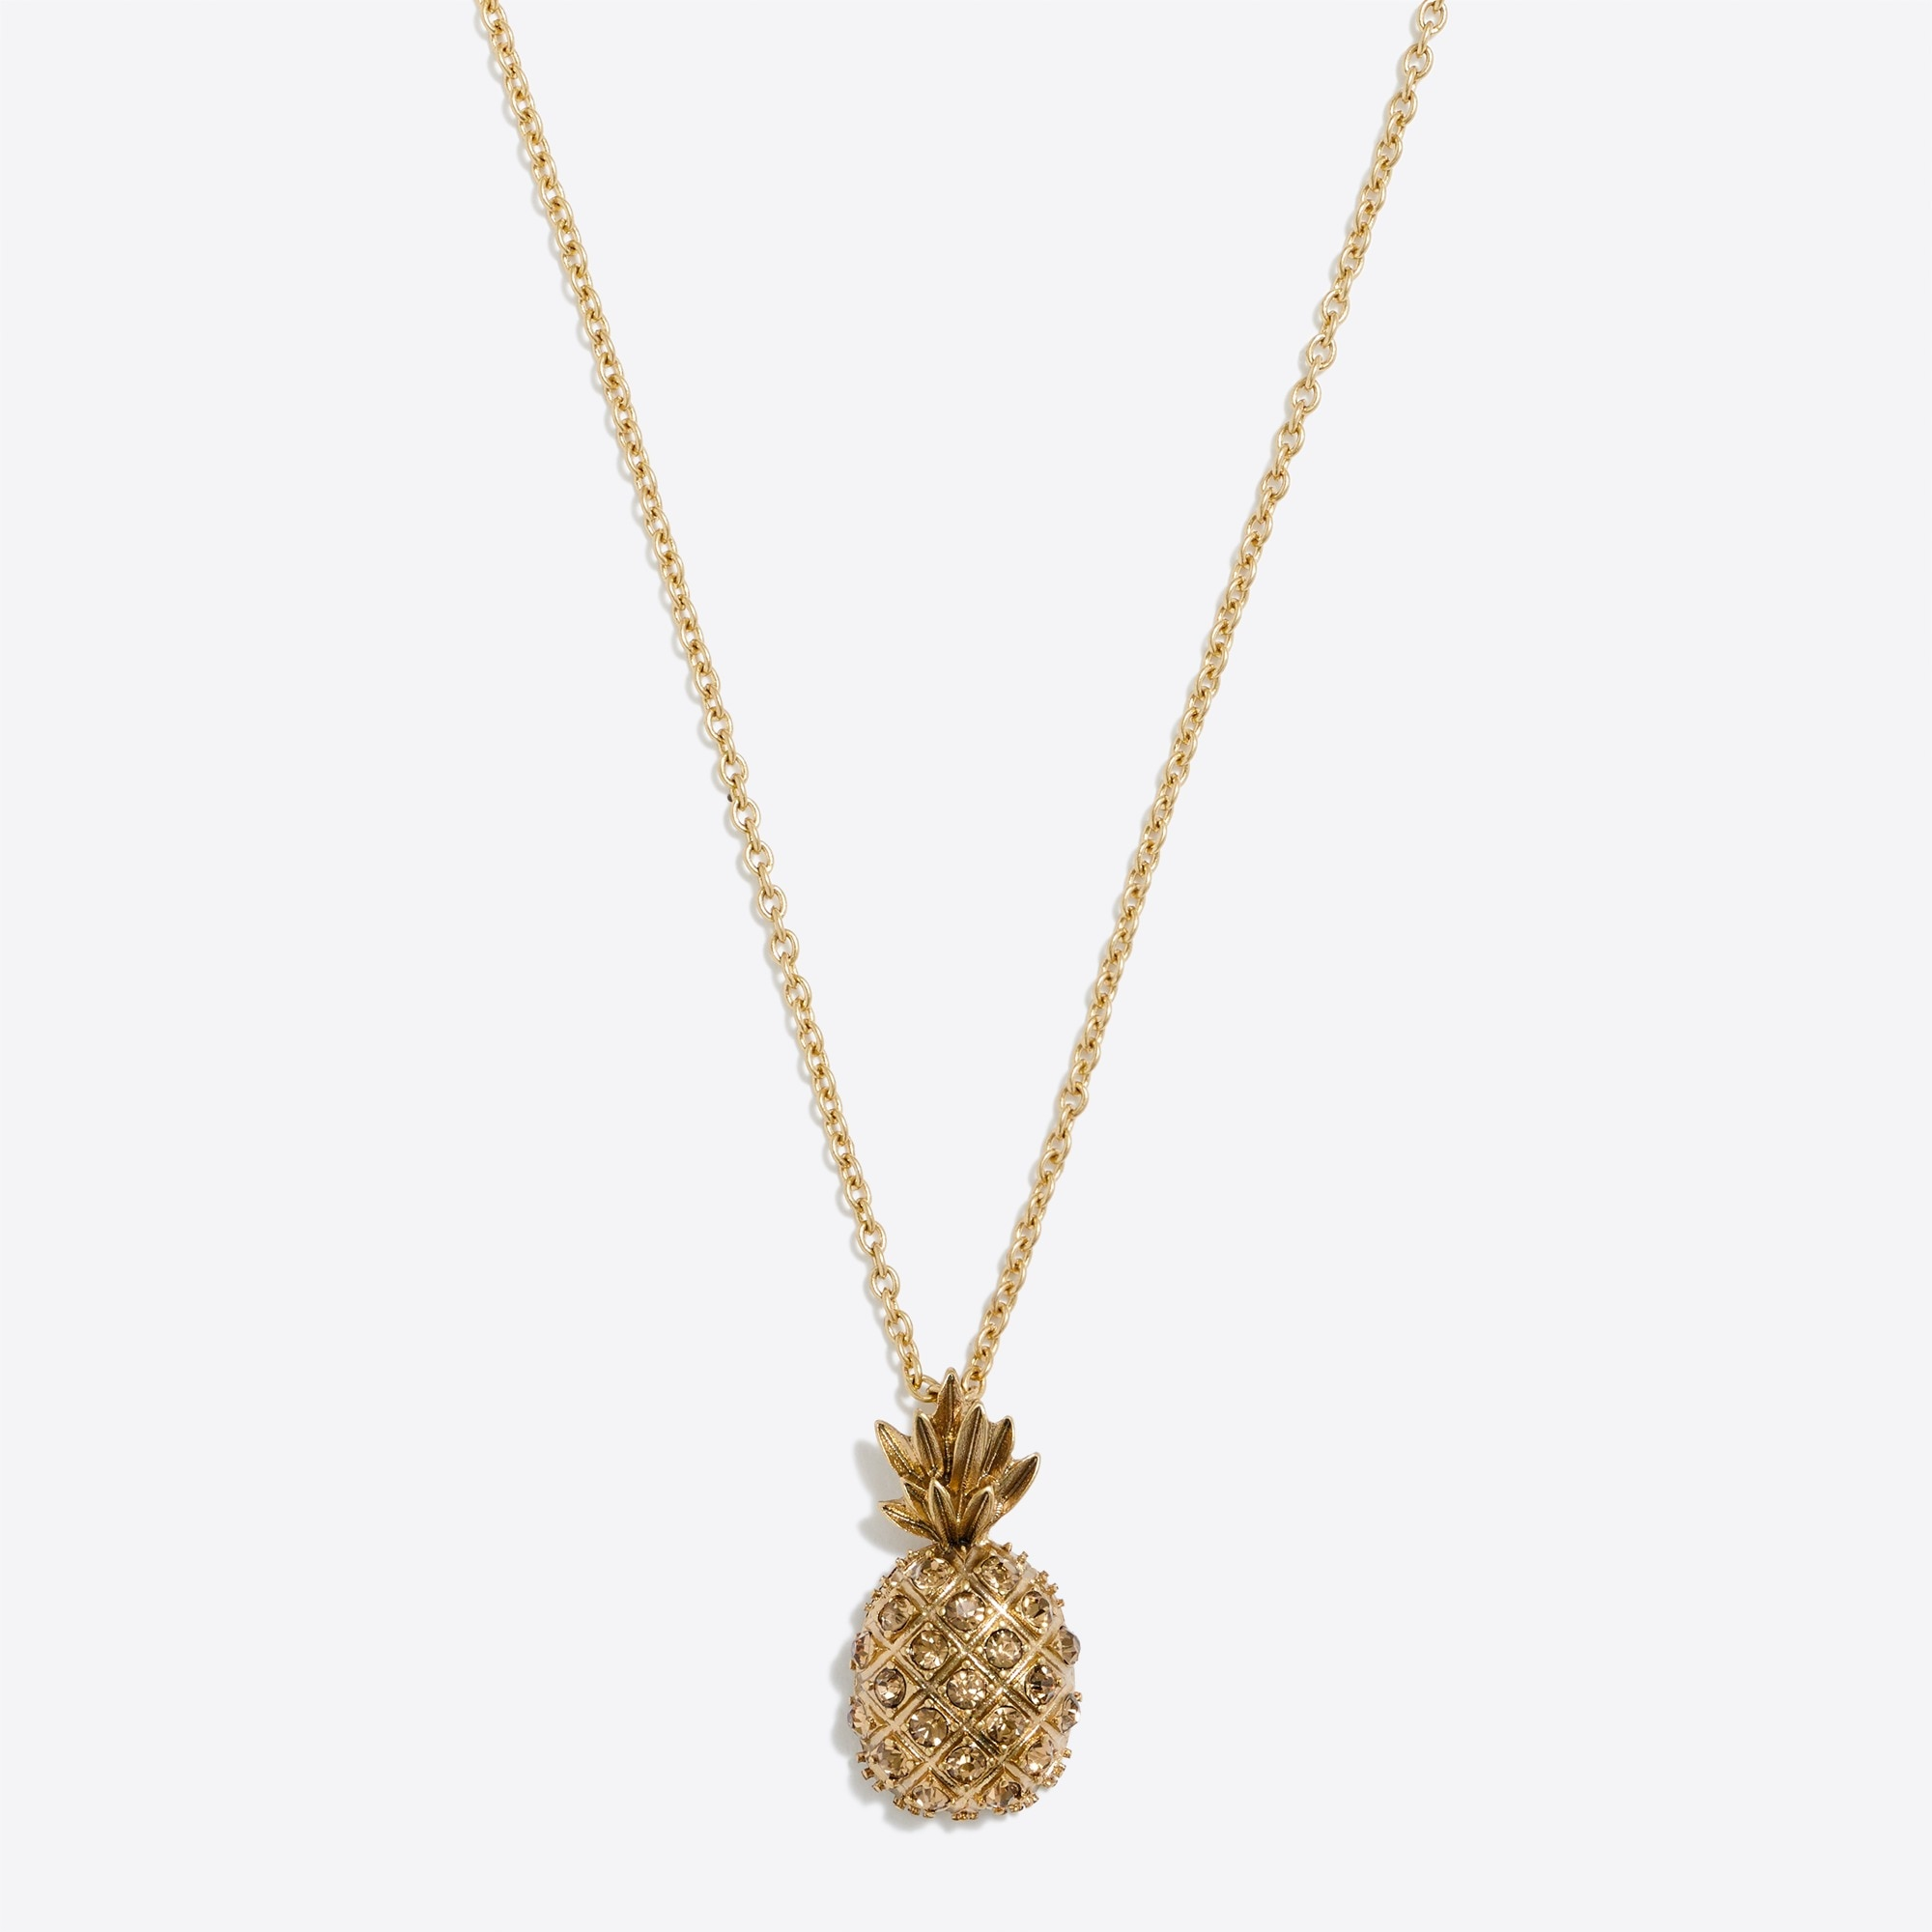 pineapple pendant necklace : factorywomen necklaces